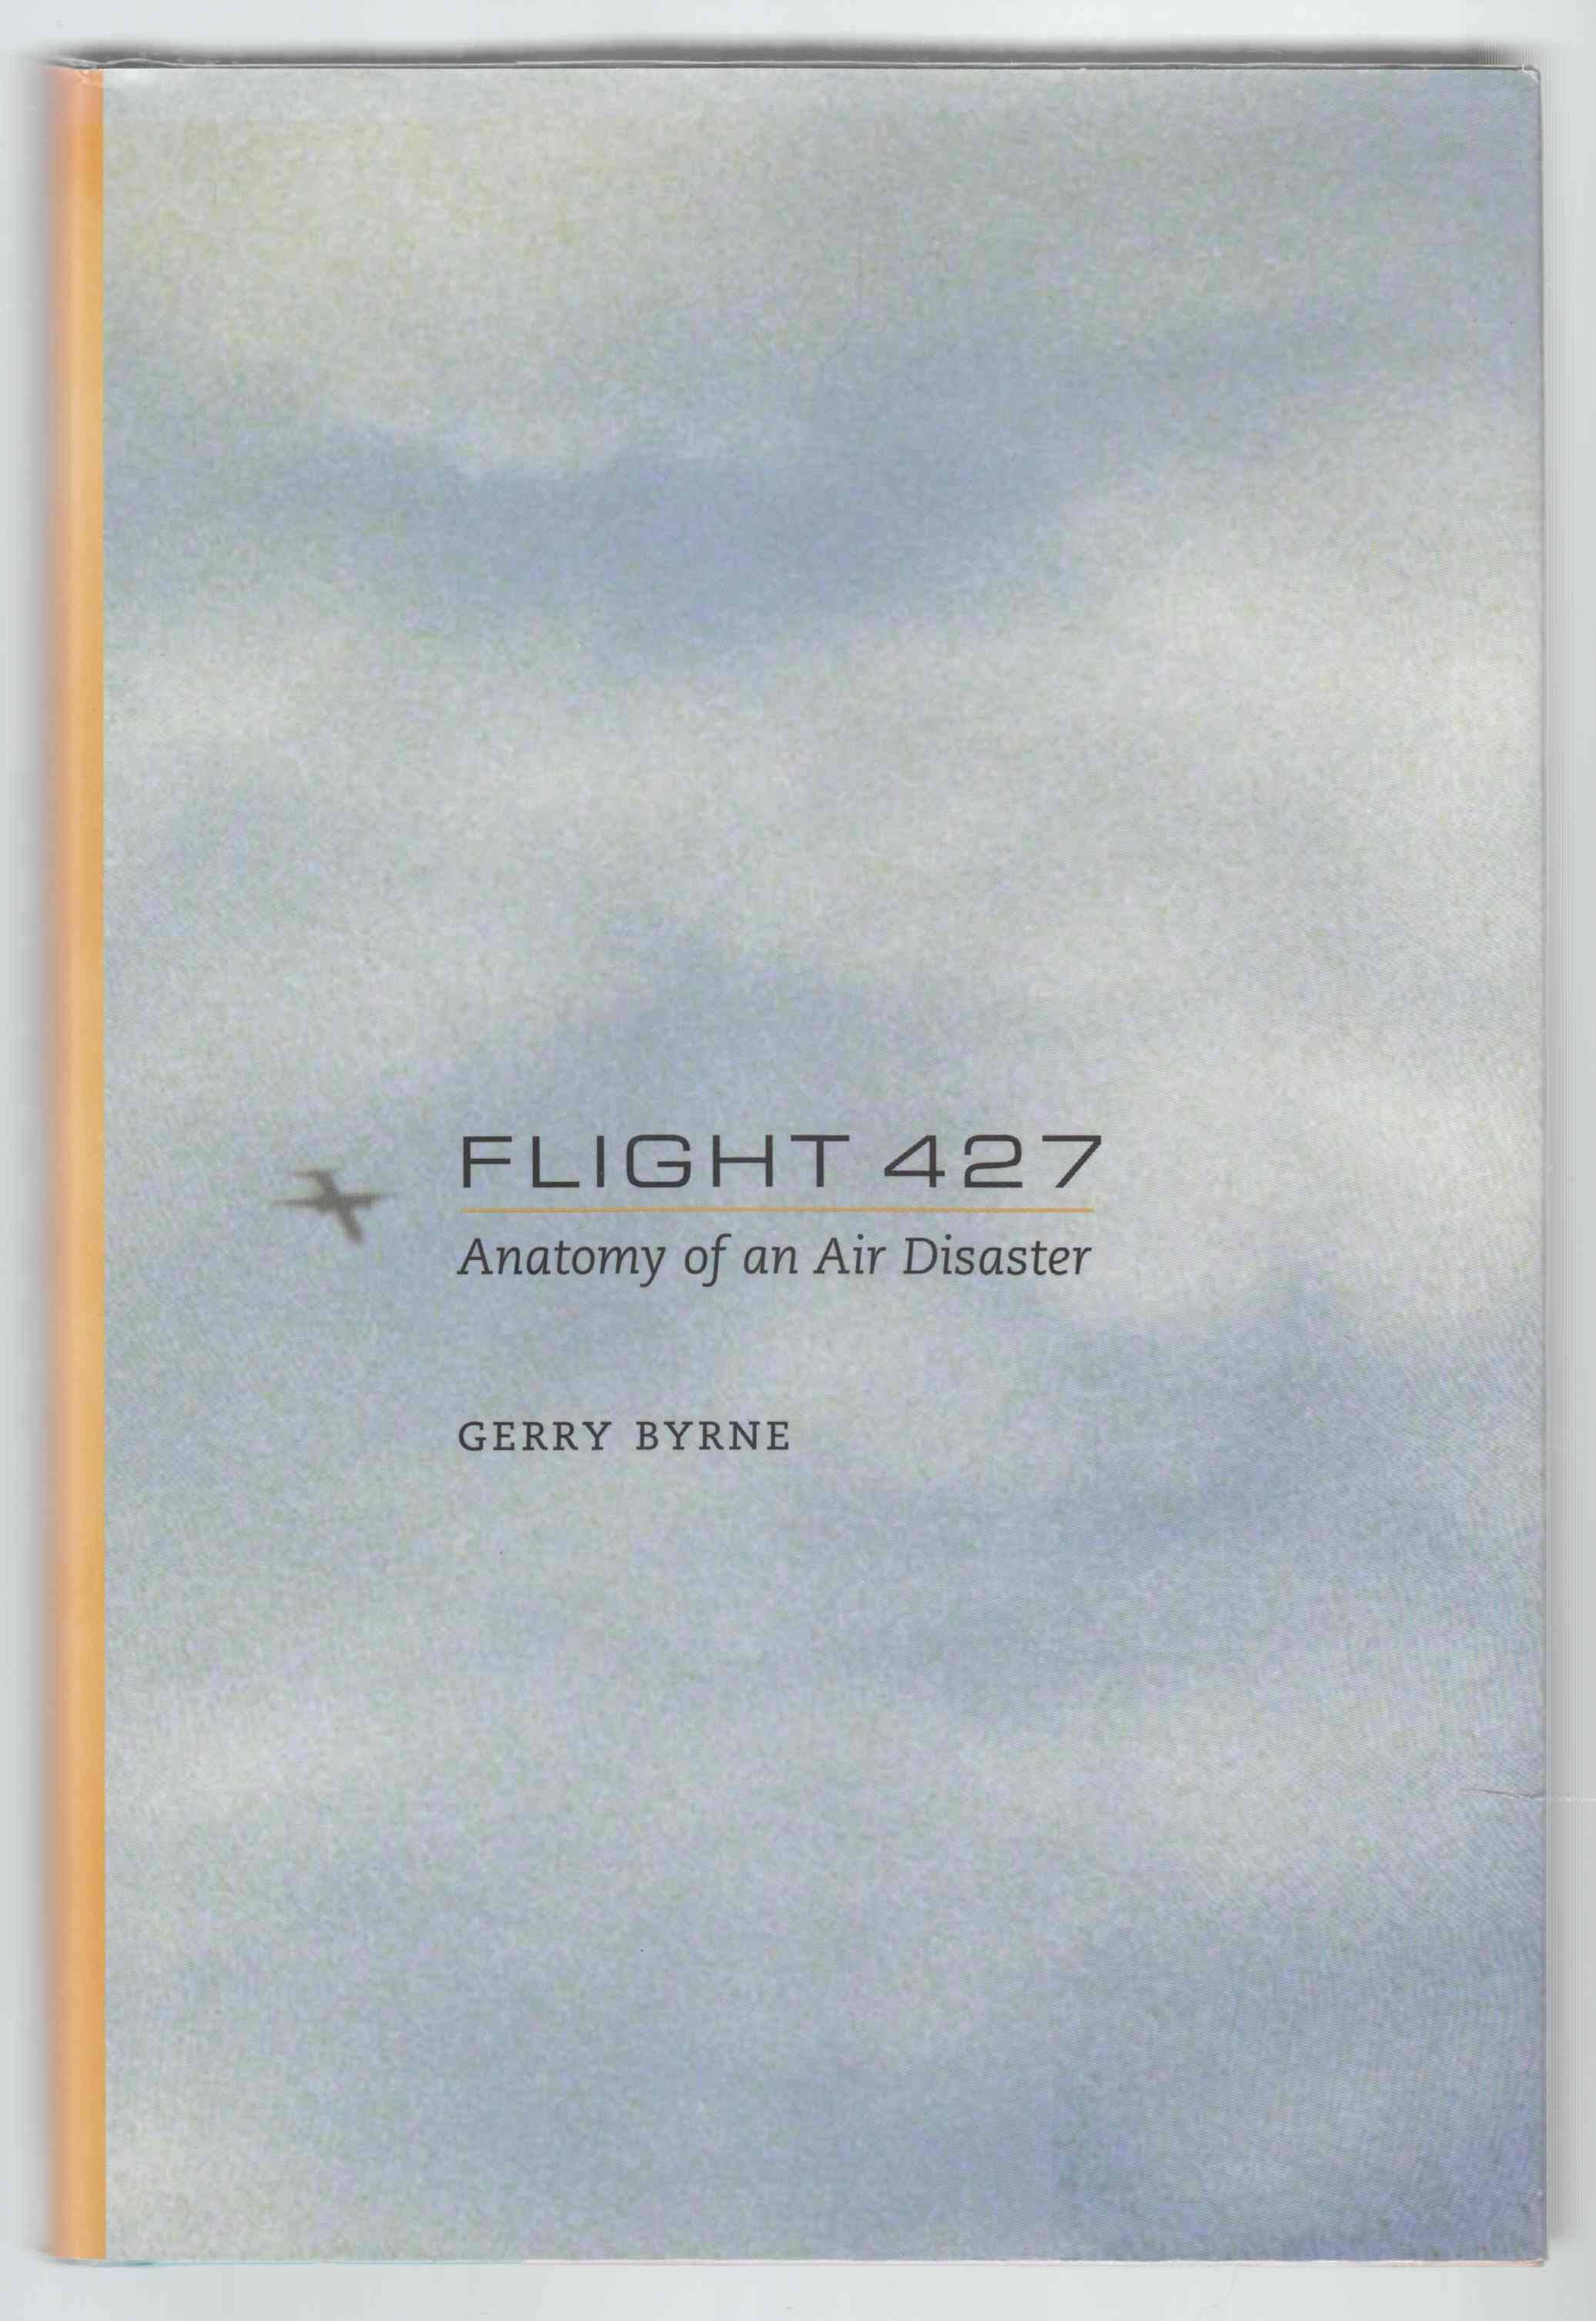 Image for Flight 427 Anatomy of an Air Disaster